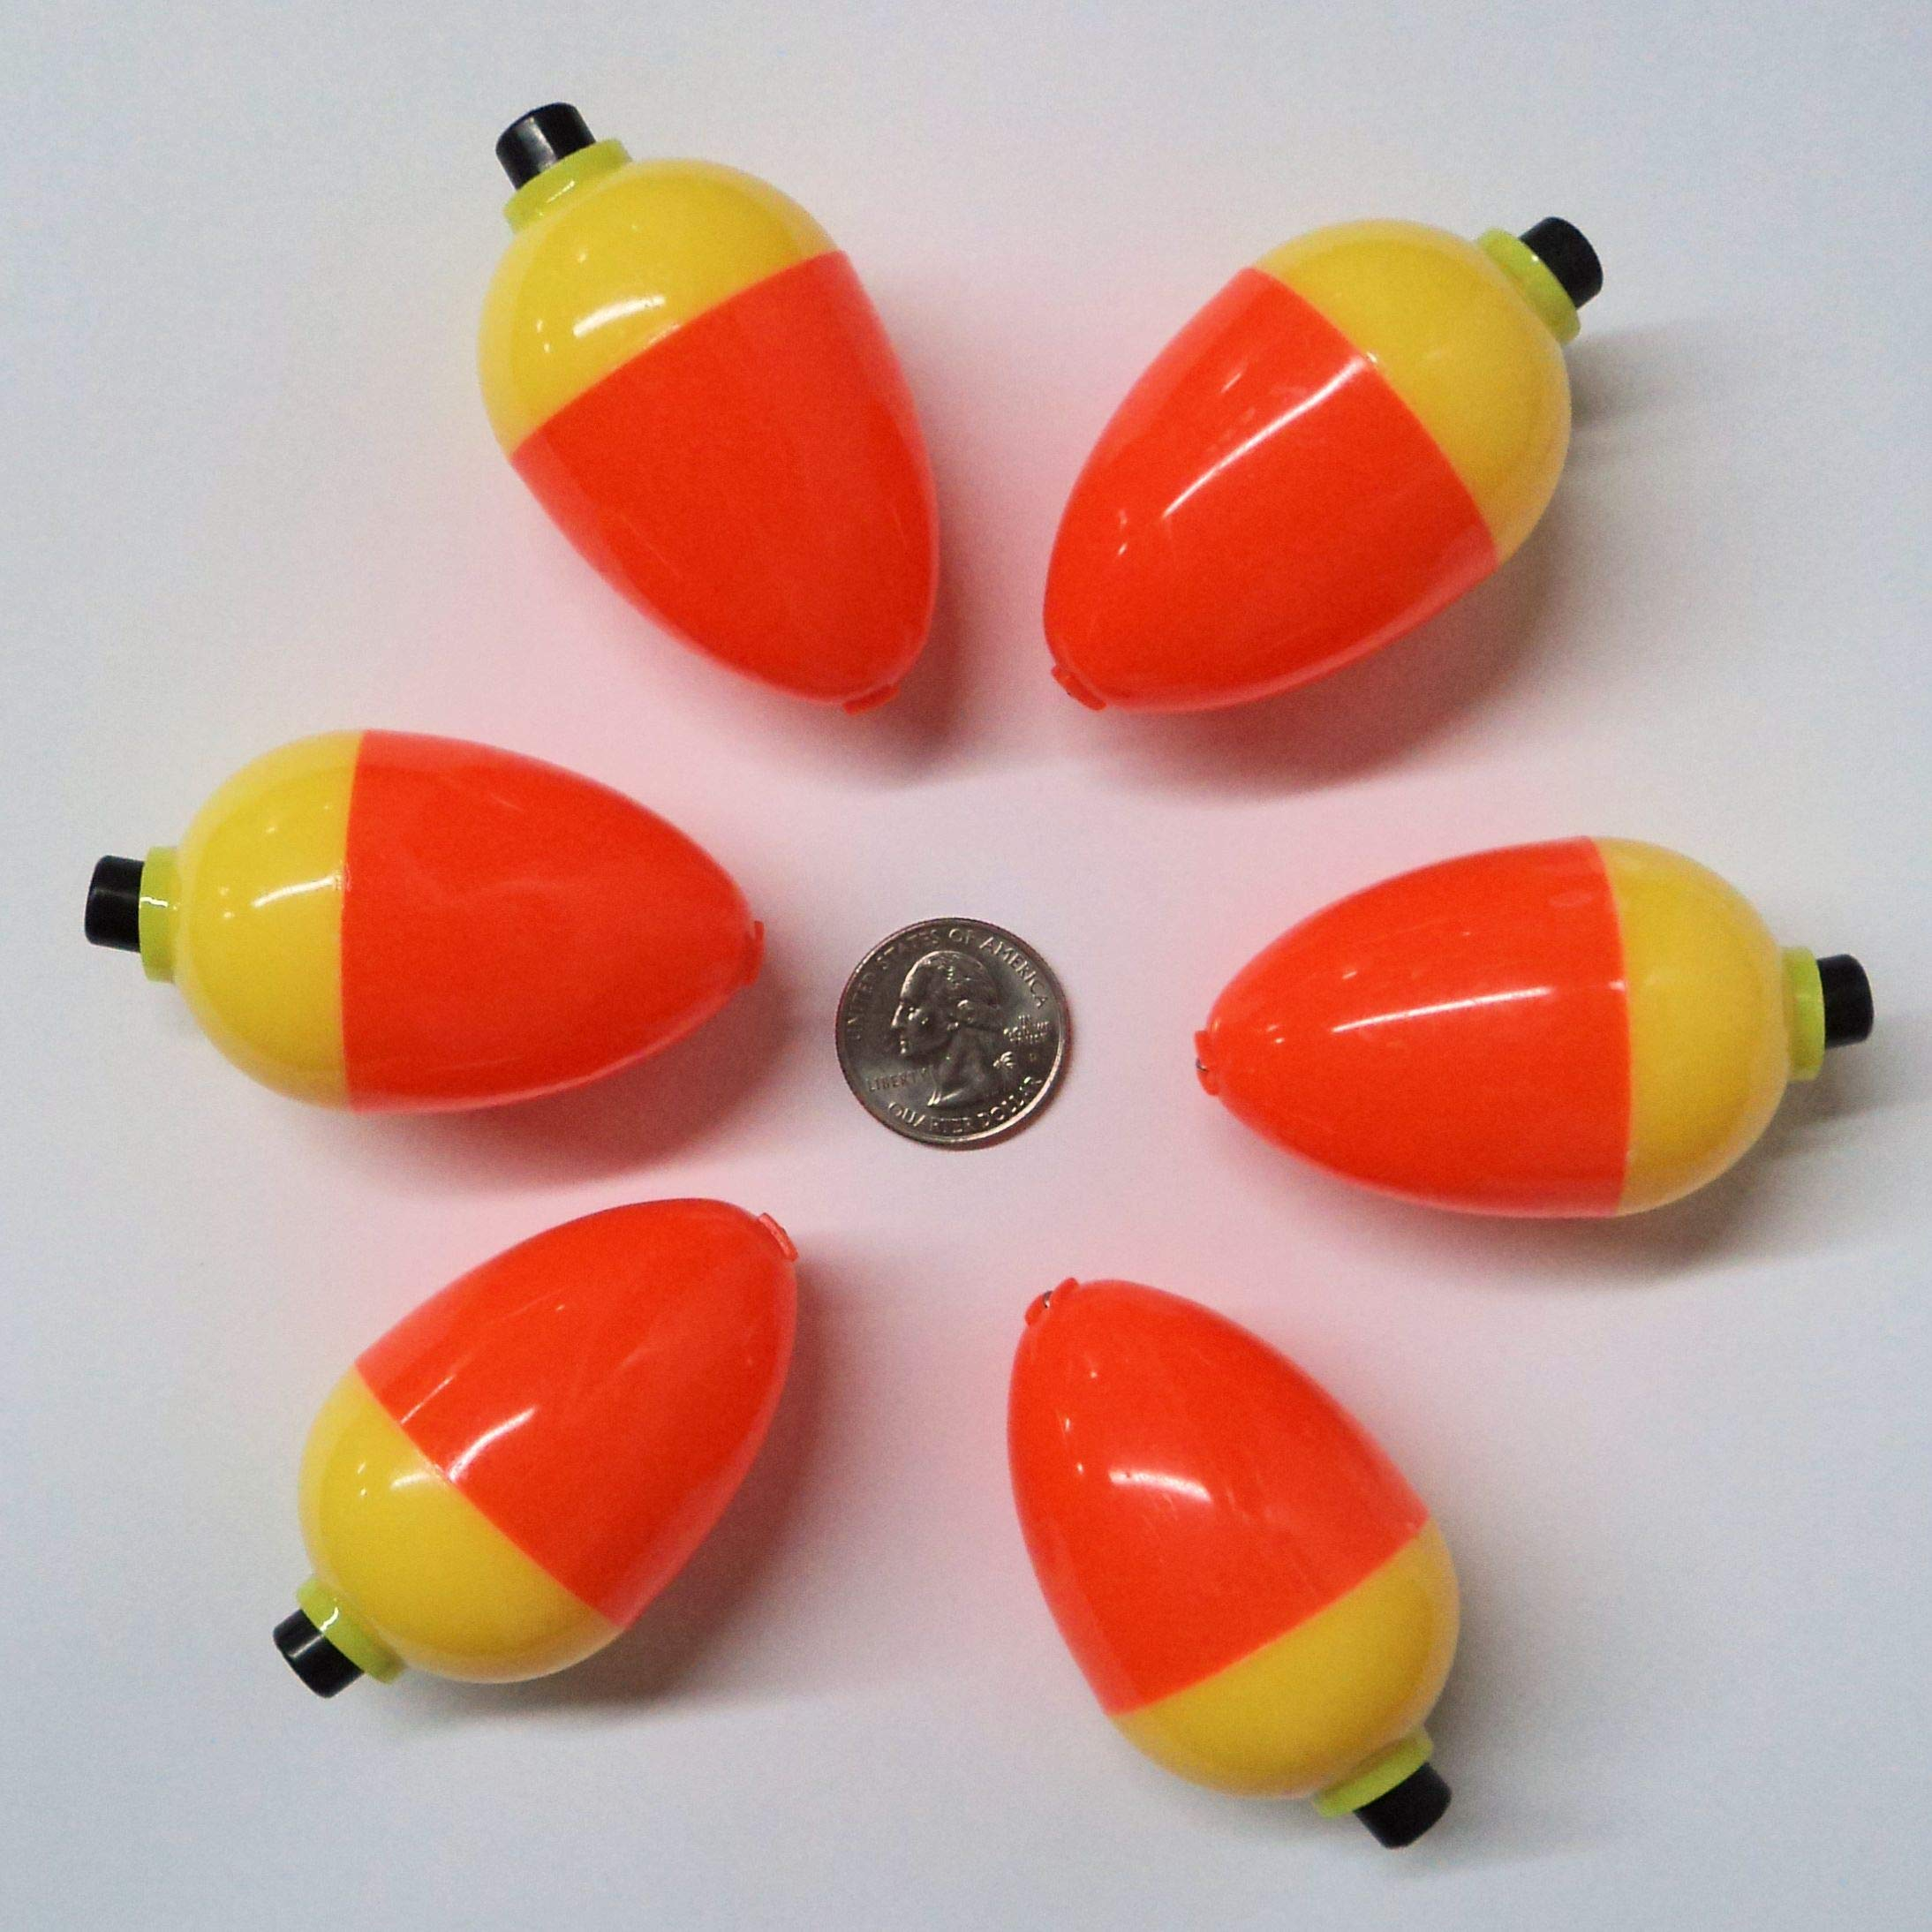 Plastilite Pear Shape Ice Fishing Bobbers Orange/Yellow 6 Pack, Bright, Easy to See 3/4 to 1-1/2 Inch